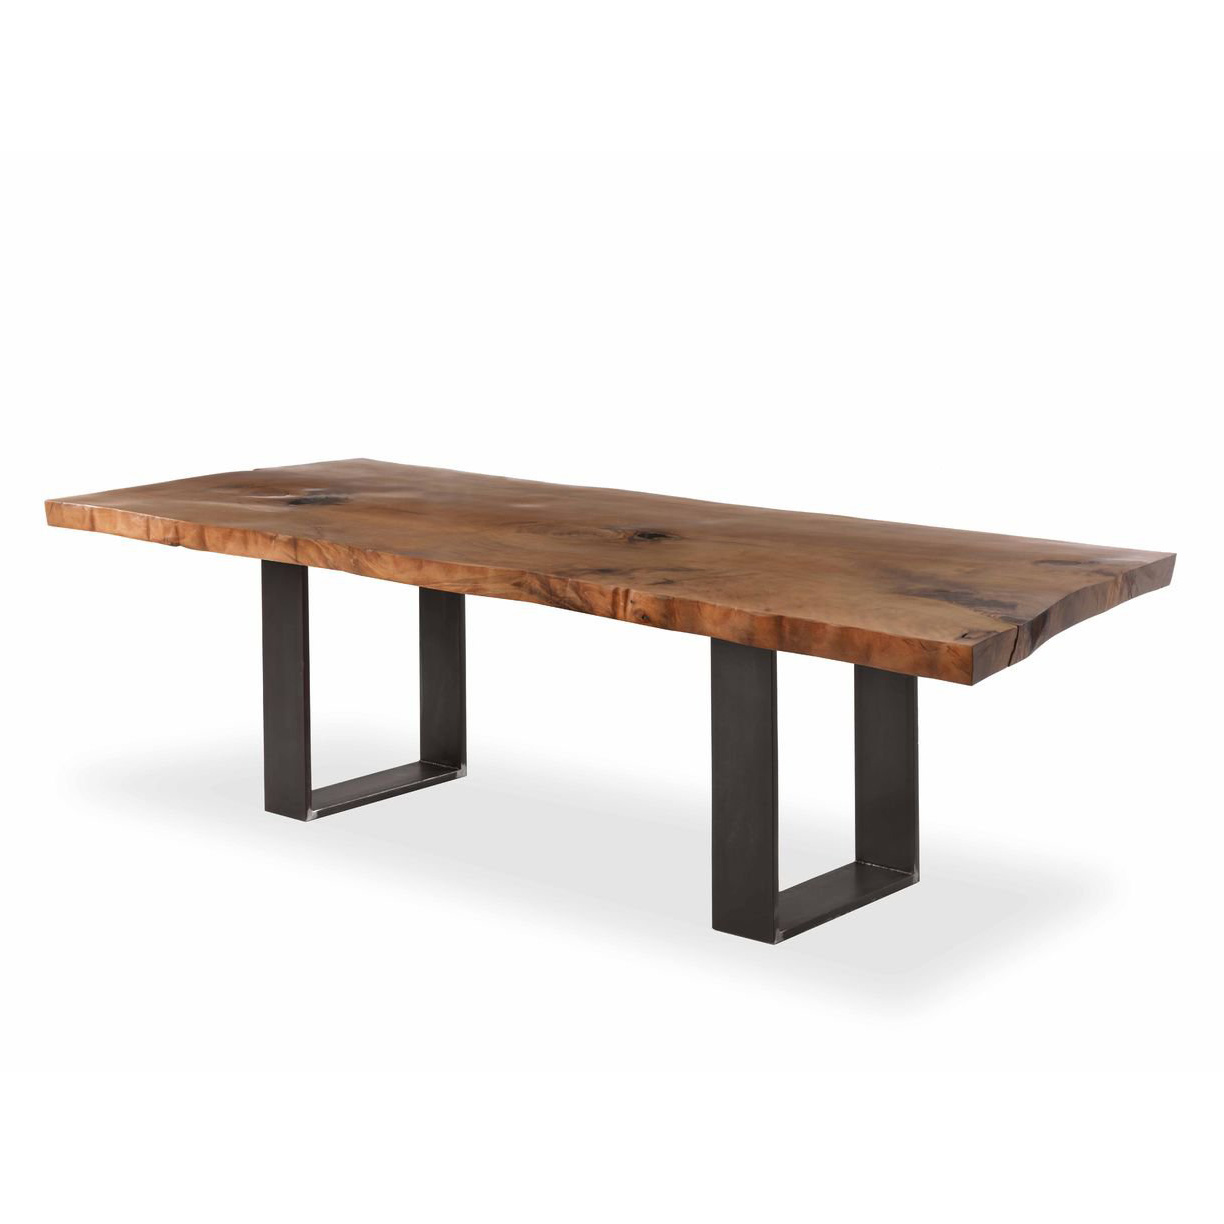 Kauri Newton dining table from Riva 1920, designed by C.R. & S. Riva 1920